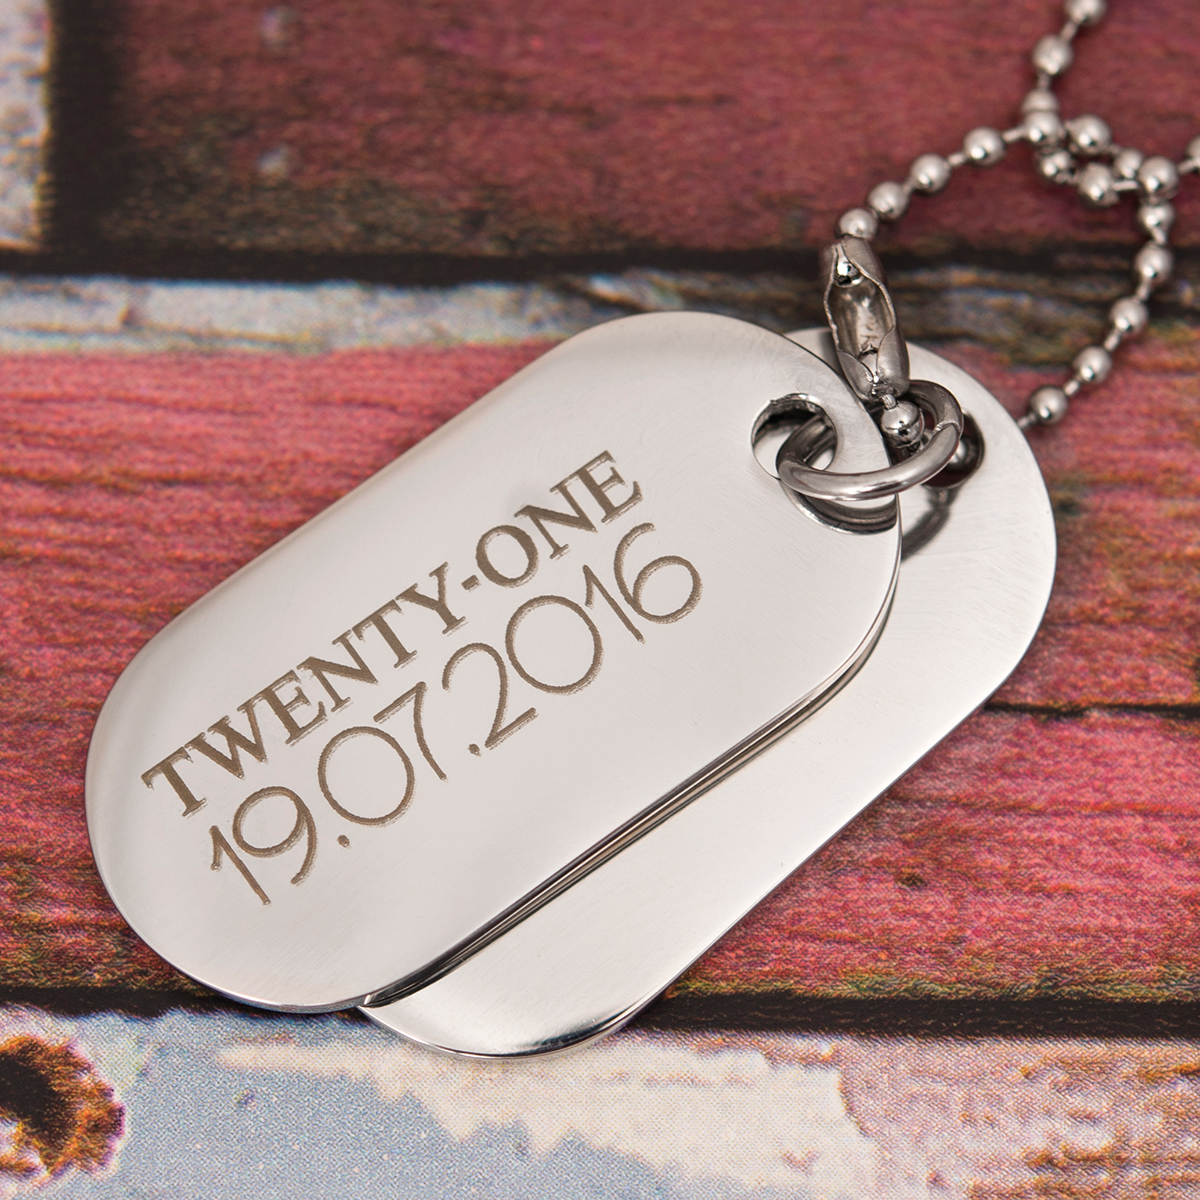 Personalised Men's Dog Tag Necklace - Twenty One - 21st gift